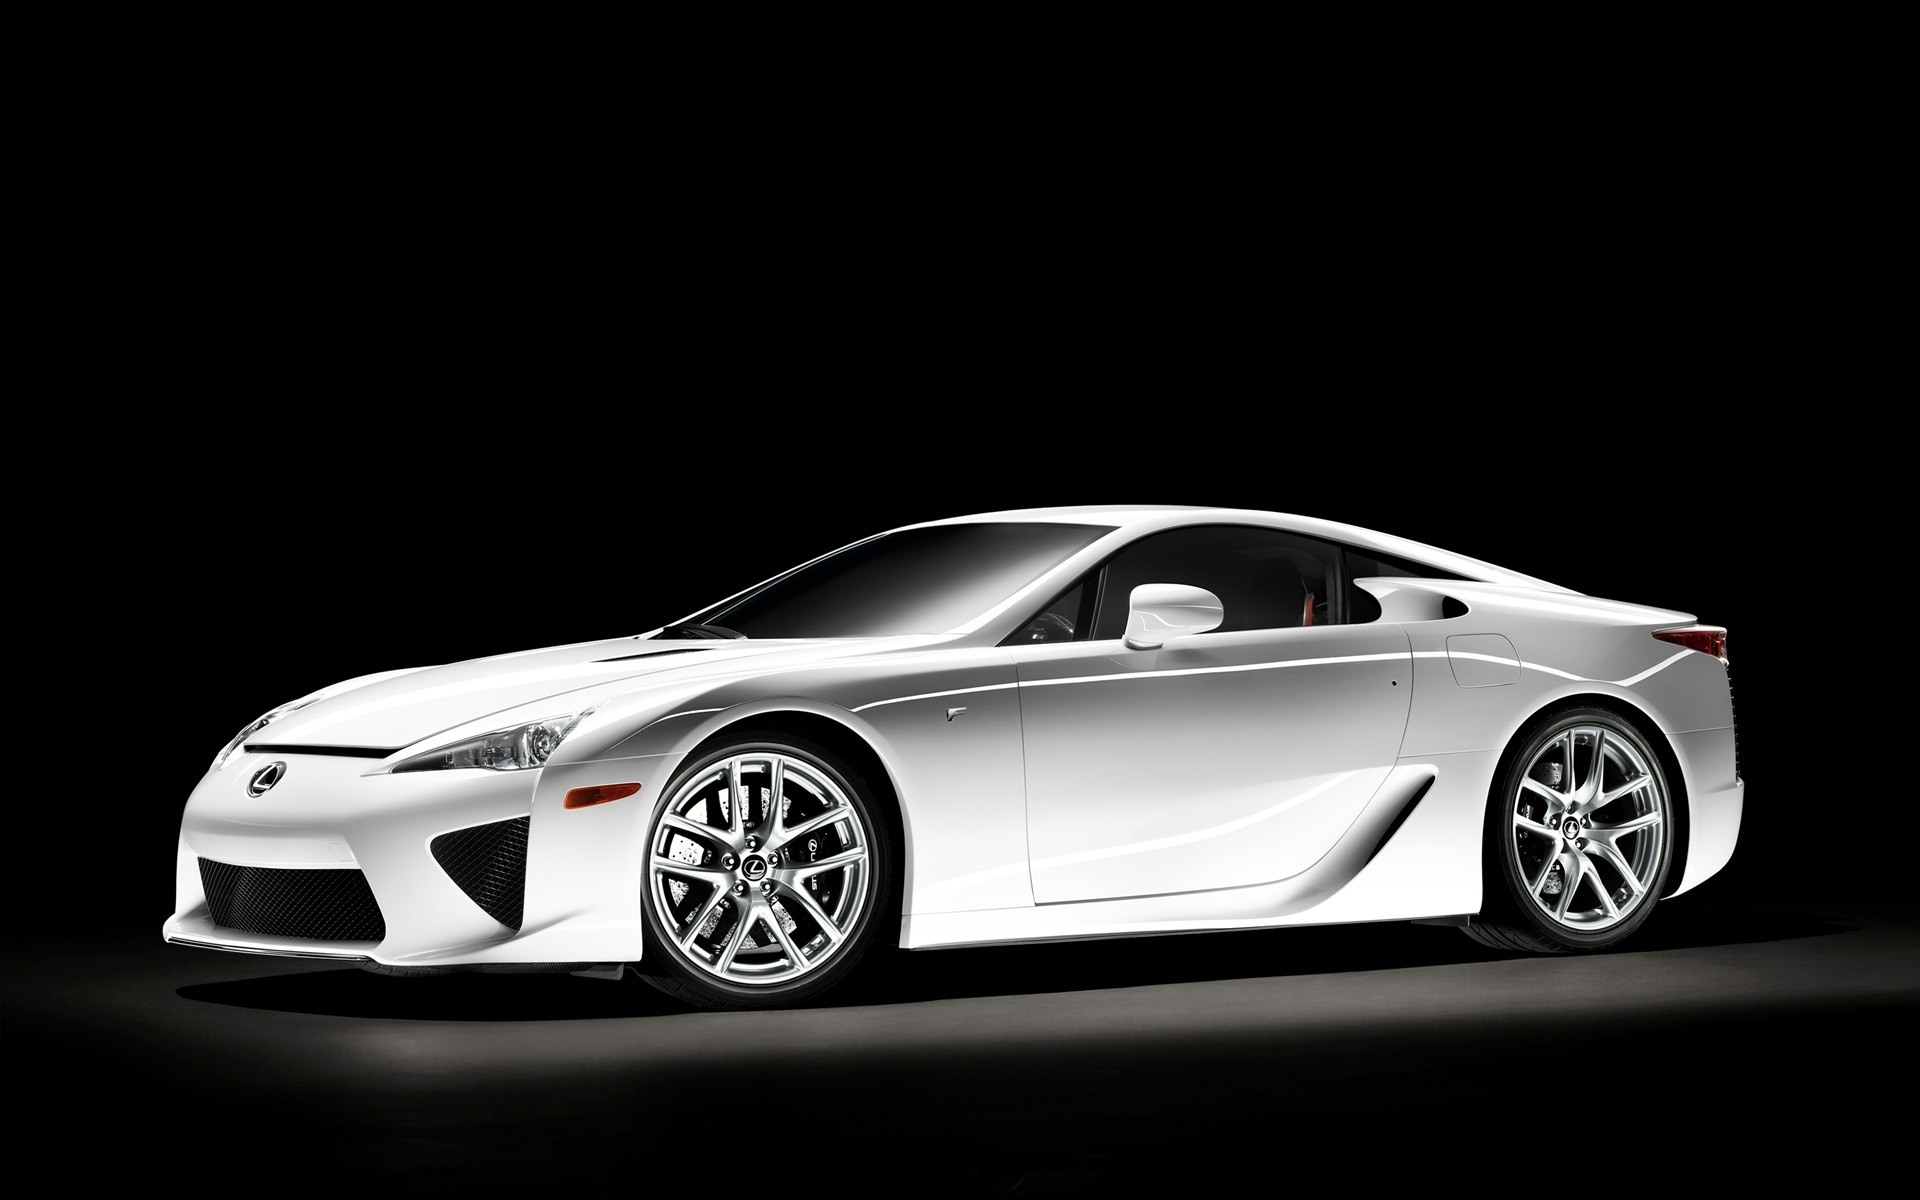 Affordable-Lexus-Lfa-In-p-HD-Cars-Gallery-Ideas-wallpaper-wp423480-1